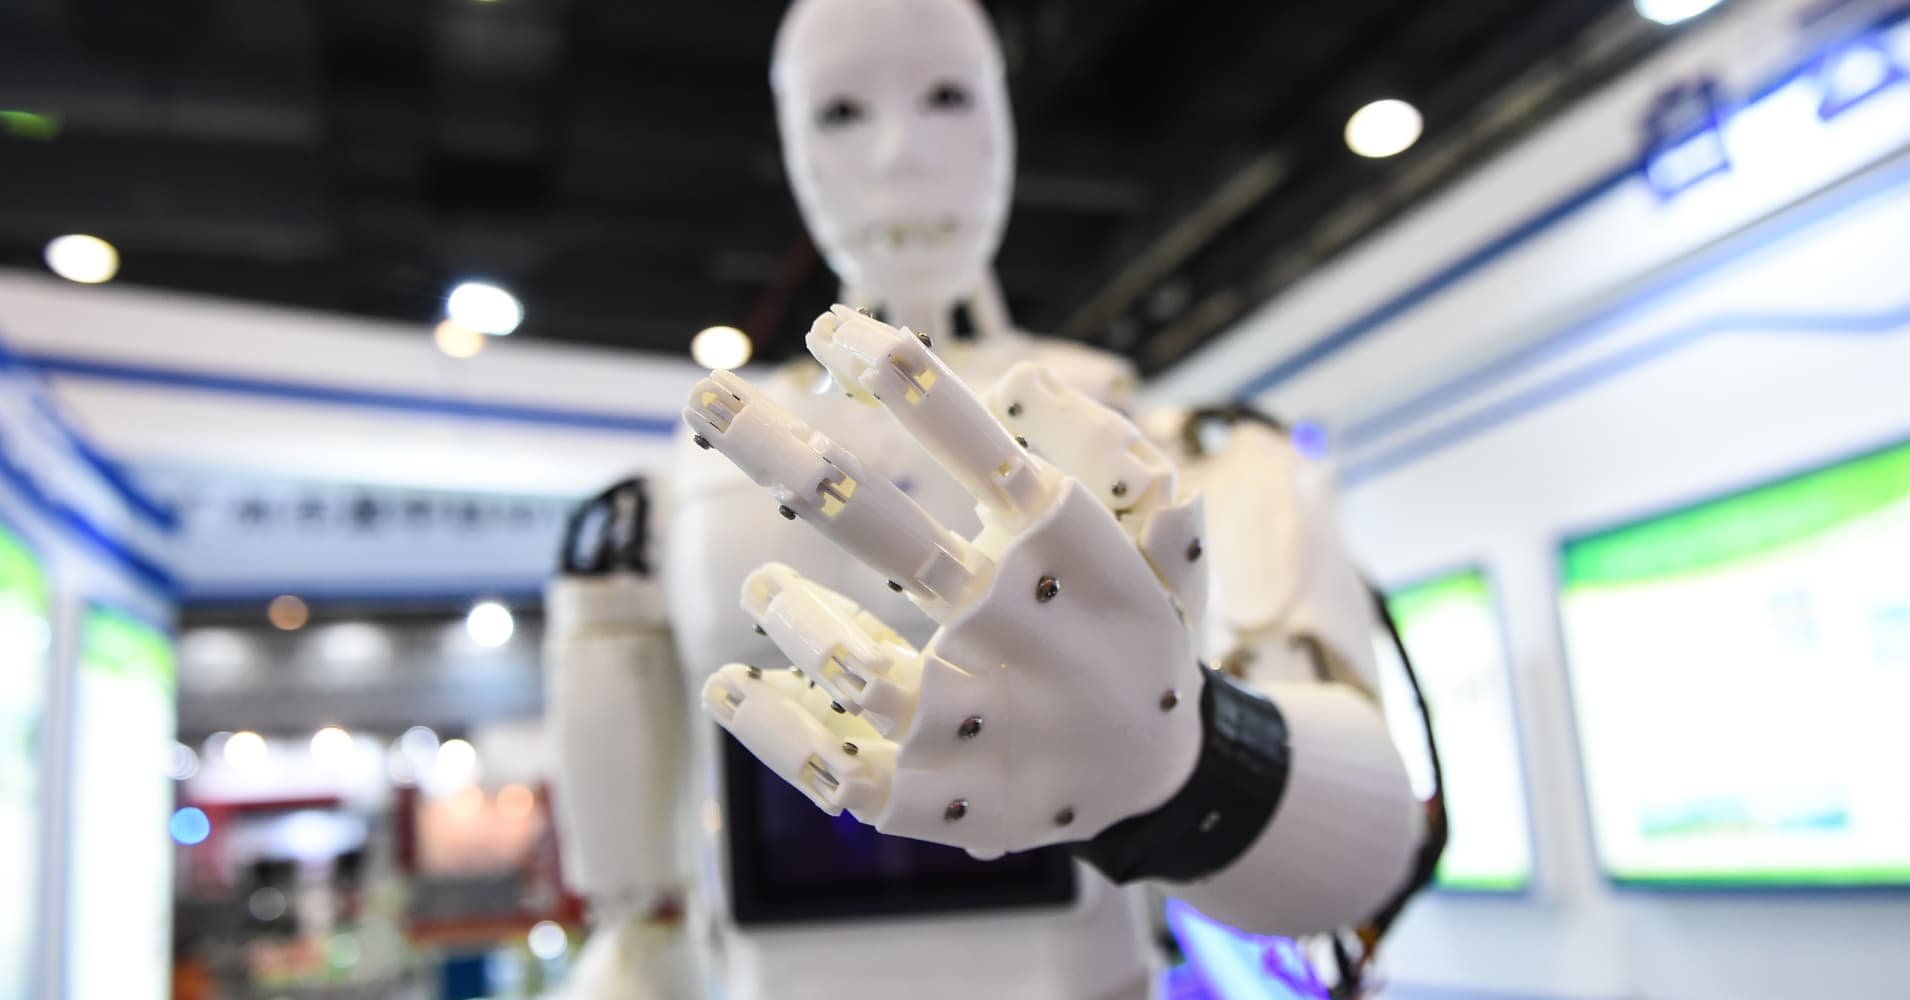 GUANGZHOU, CHINA - NOVEMBER 18 : Guiding robot, made by 3d printer are being displayed during International Robotics Exhibition at Pazhou convention and exhibition center in Guangzhou, China on November 18, 2016.